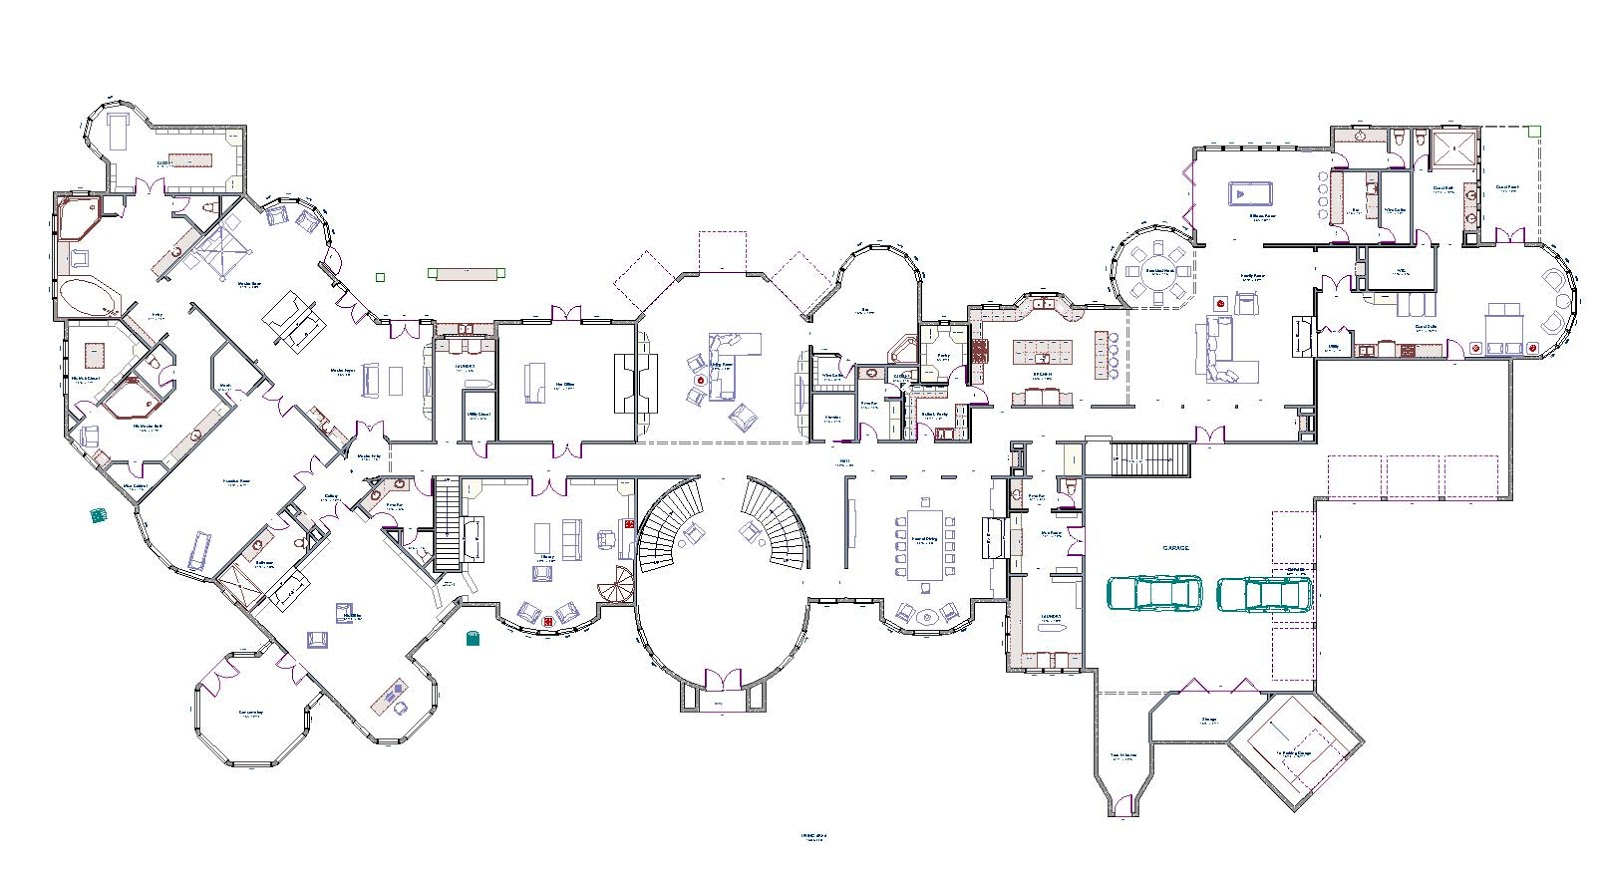 Partial Floor Plans I Have Designed Part 2 title=